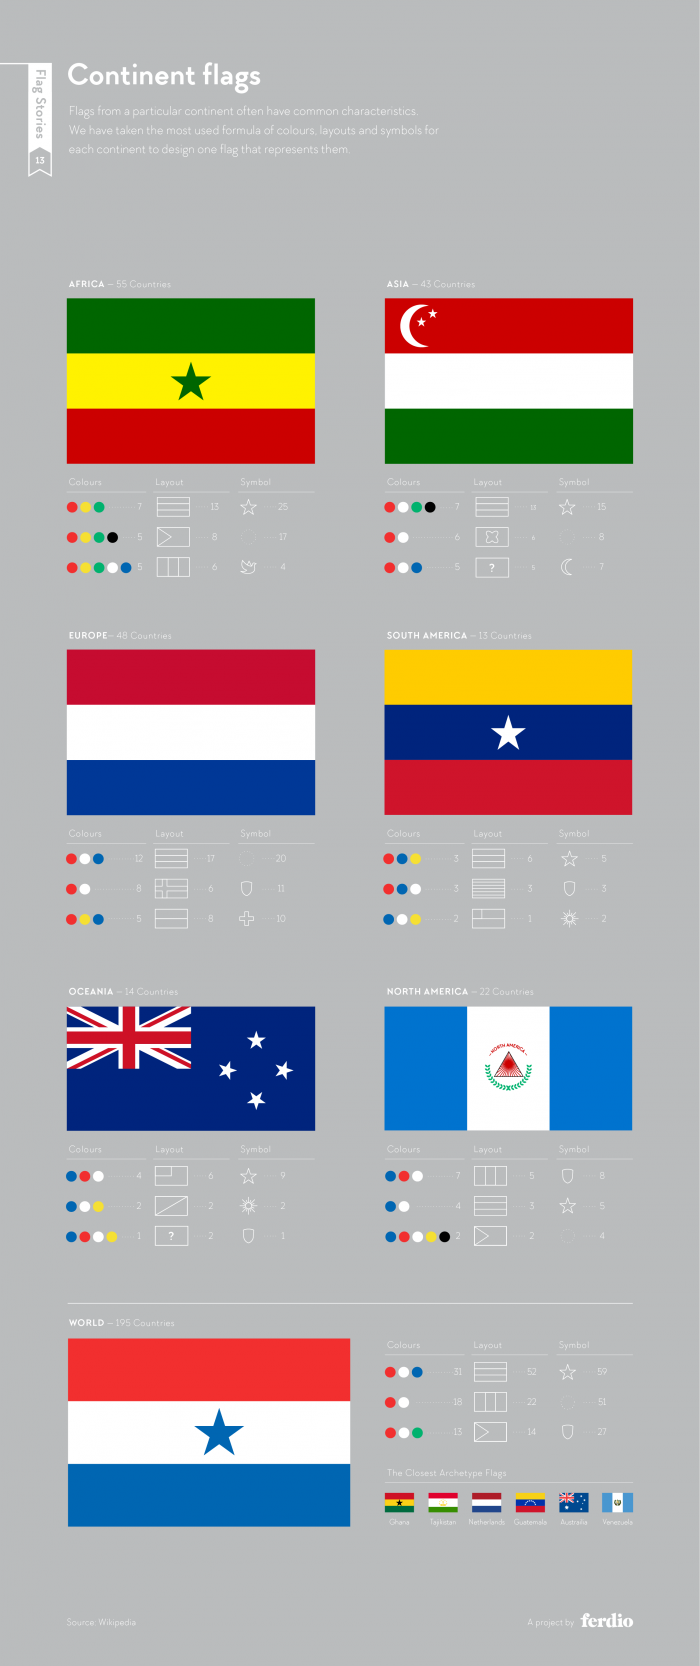 The hidden graphic design behind flags | Design Indaba